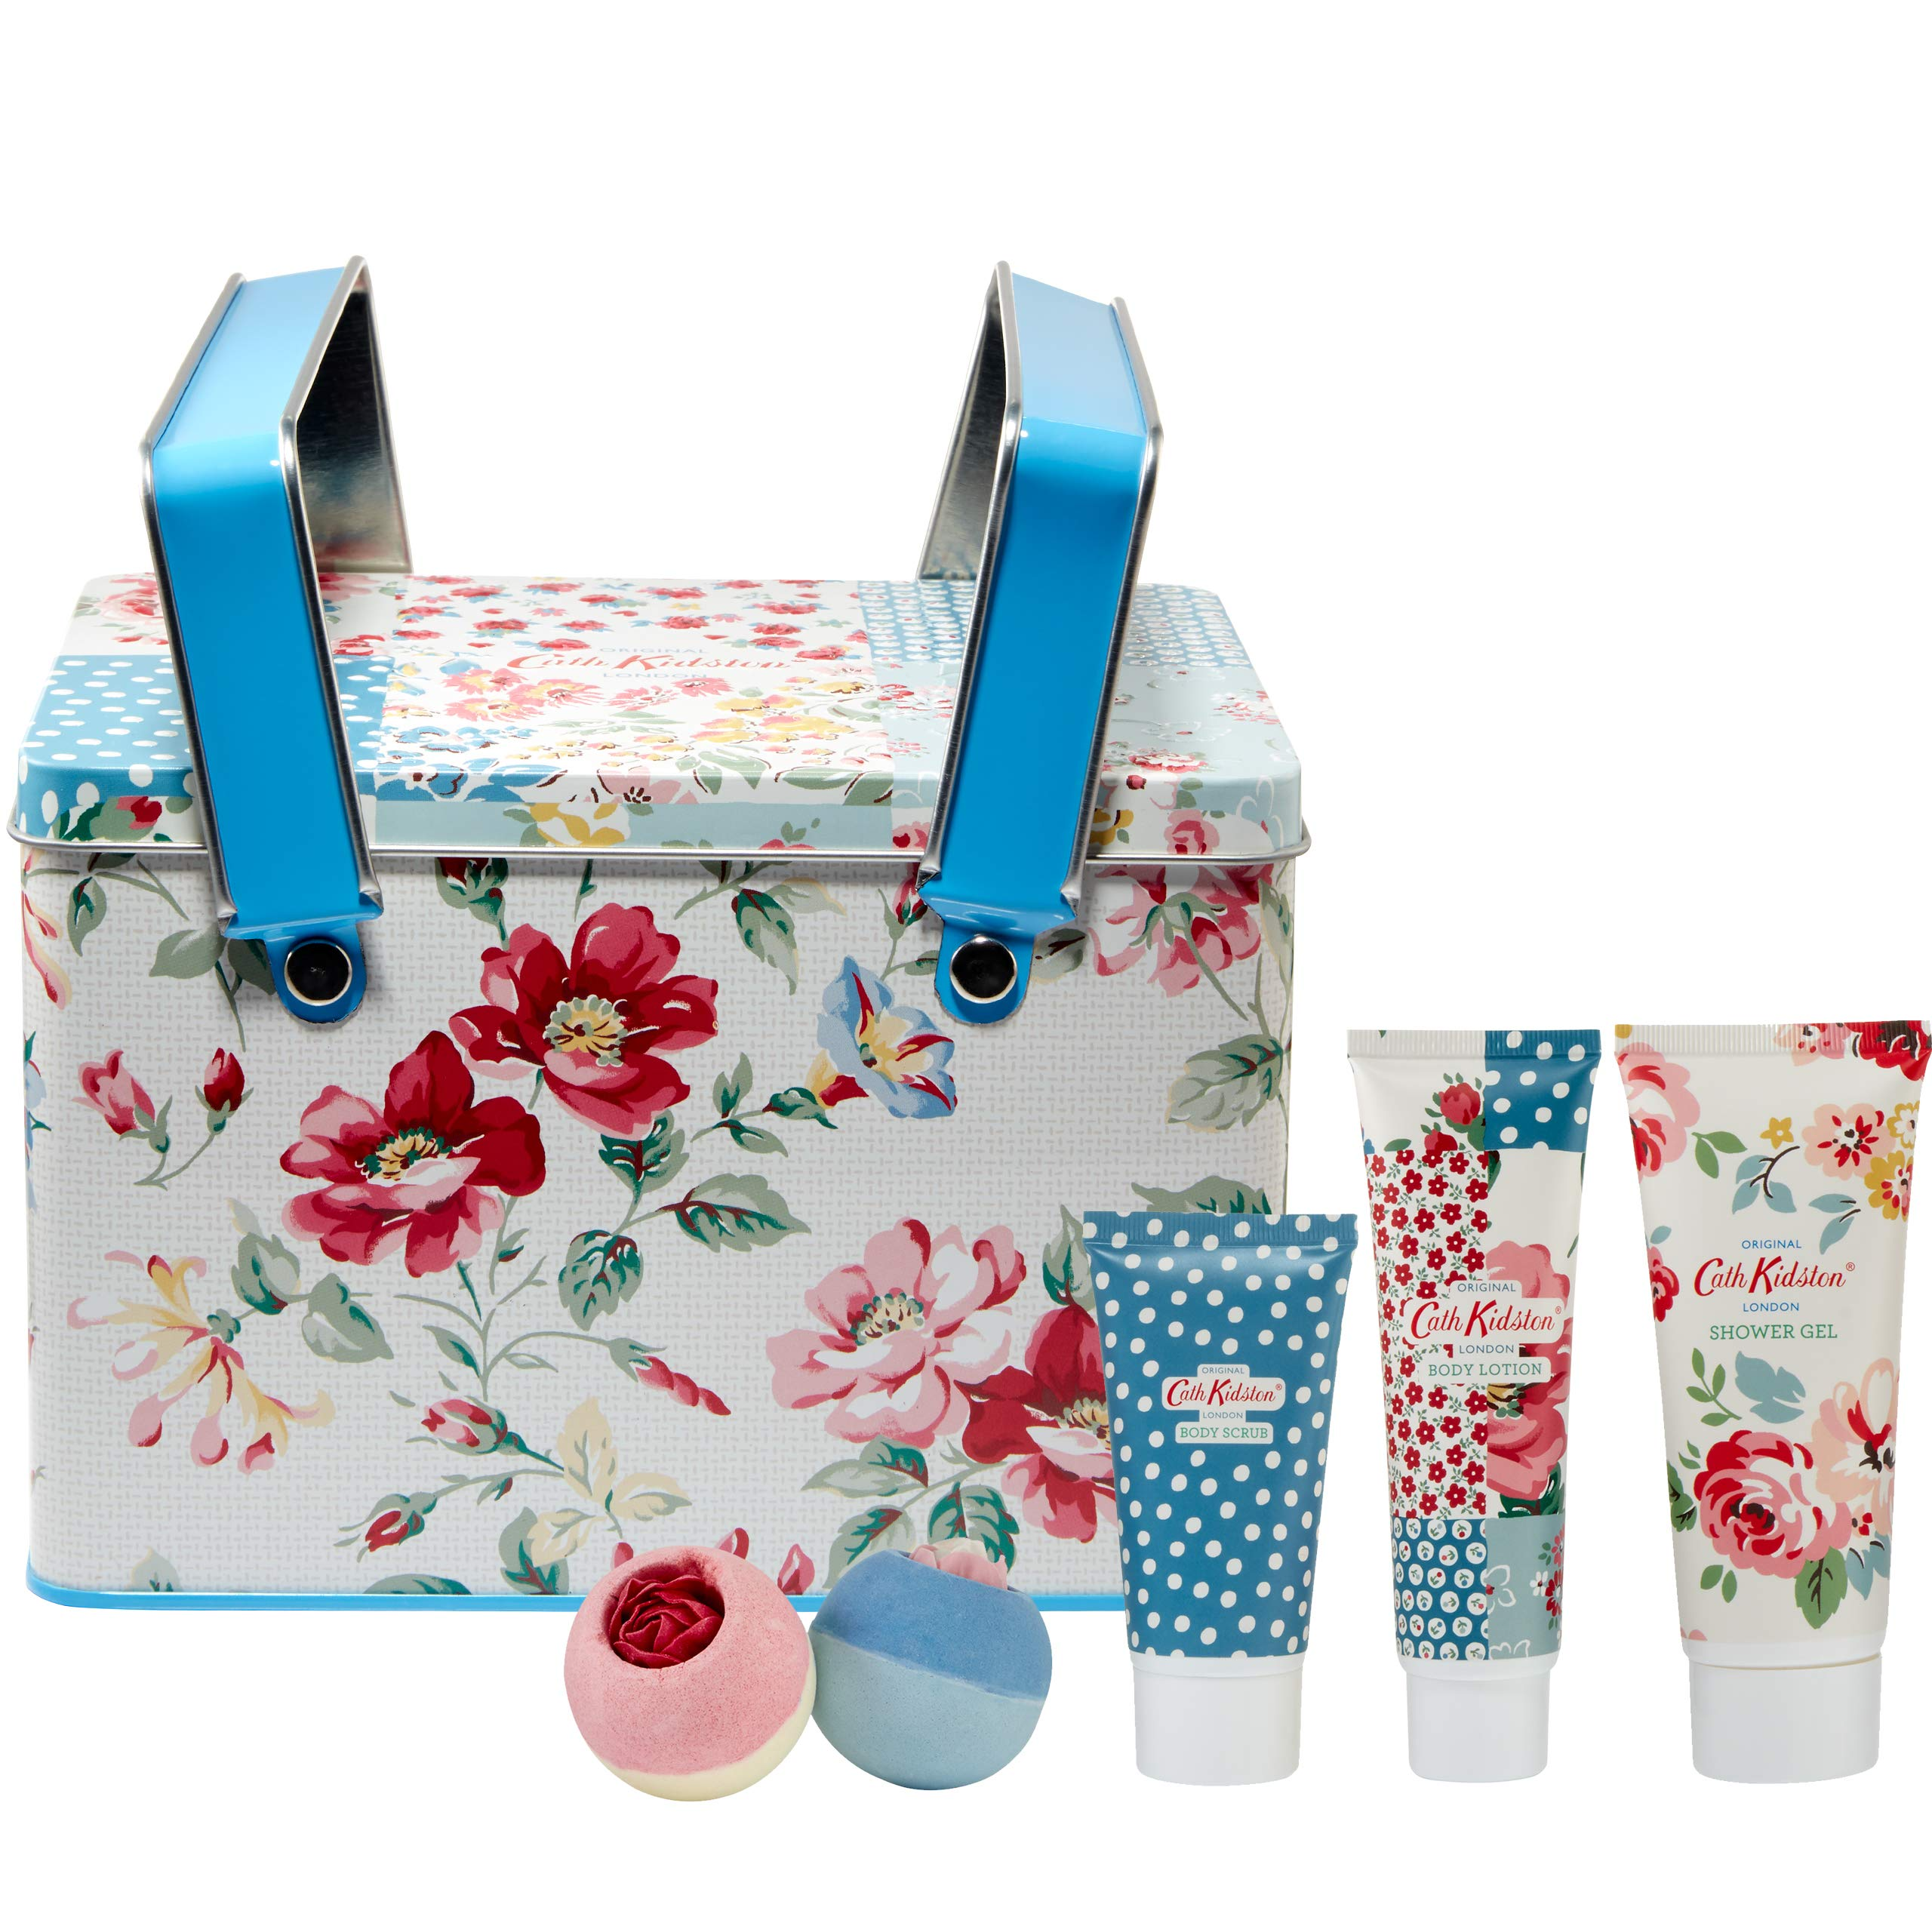 Cath Kidston Beauty Cottage Patchwork Picnic Tin Gift Set, 100 ml Shower Gel, 75 ml Body Lotion, 50 ml Body Scrub, 2 x 80 g Bath Fizzers